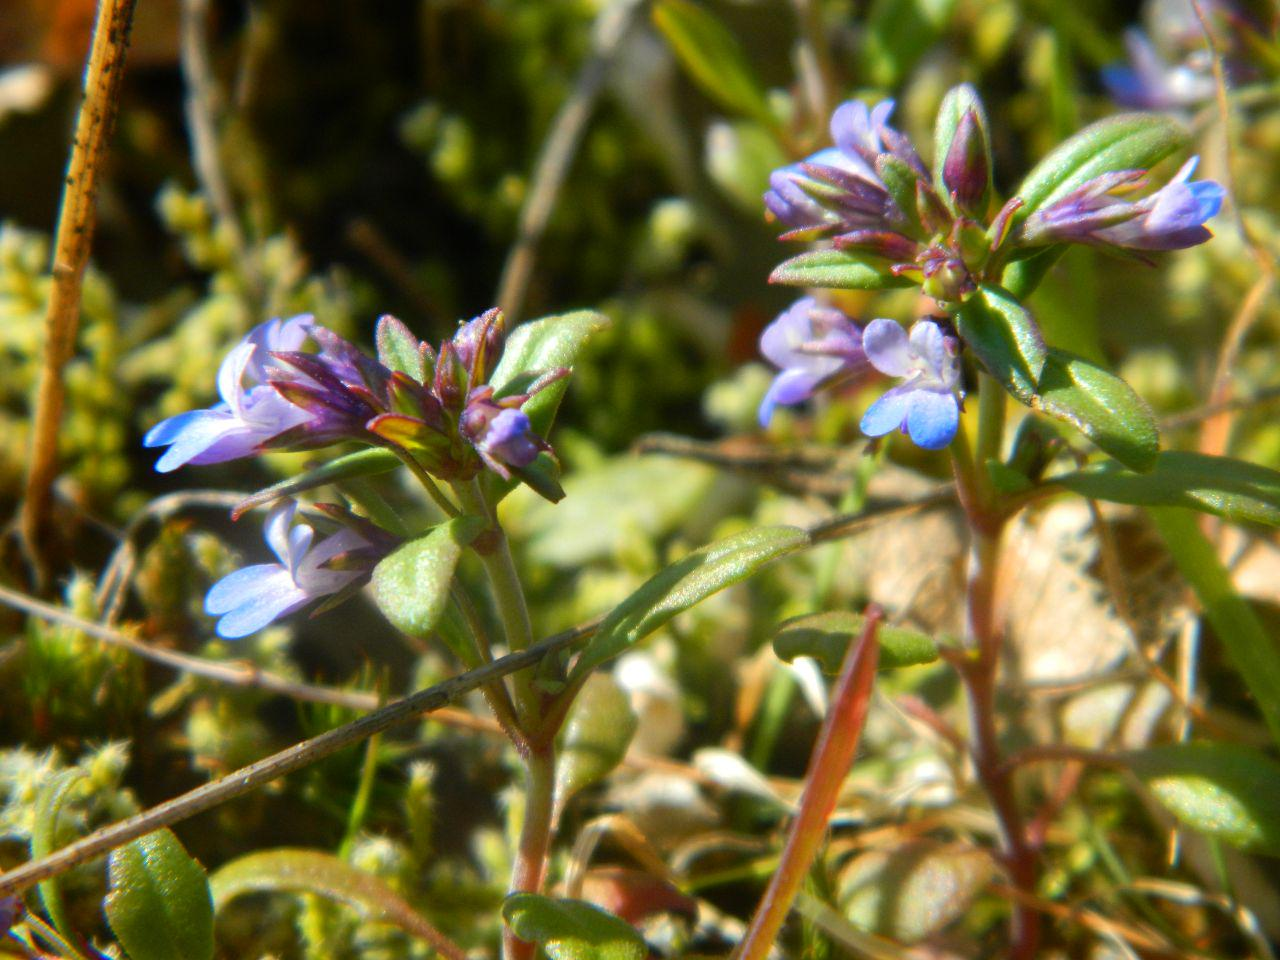 Blue-eyed mary - Collinsia parviflora